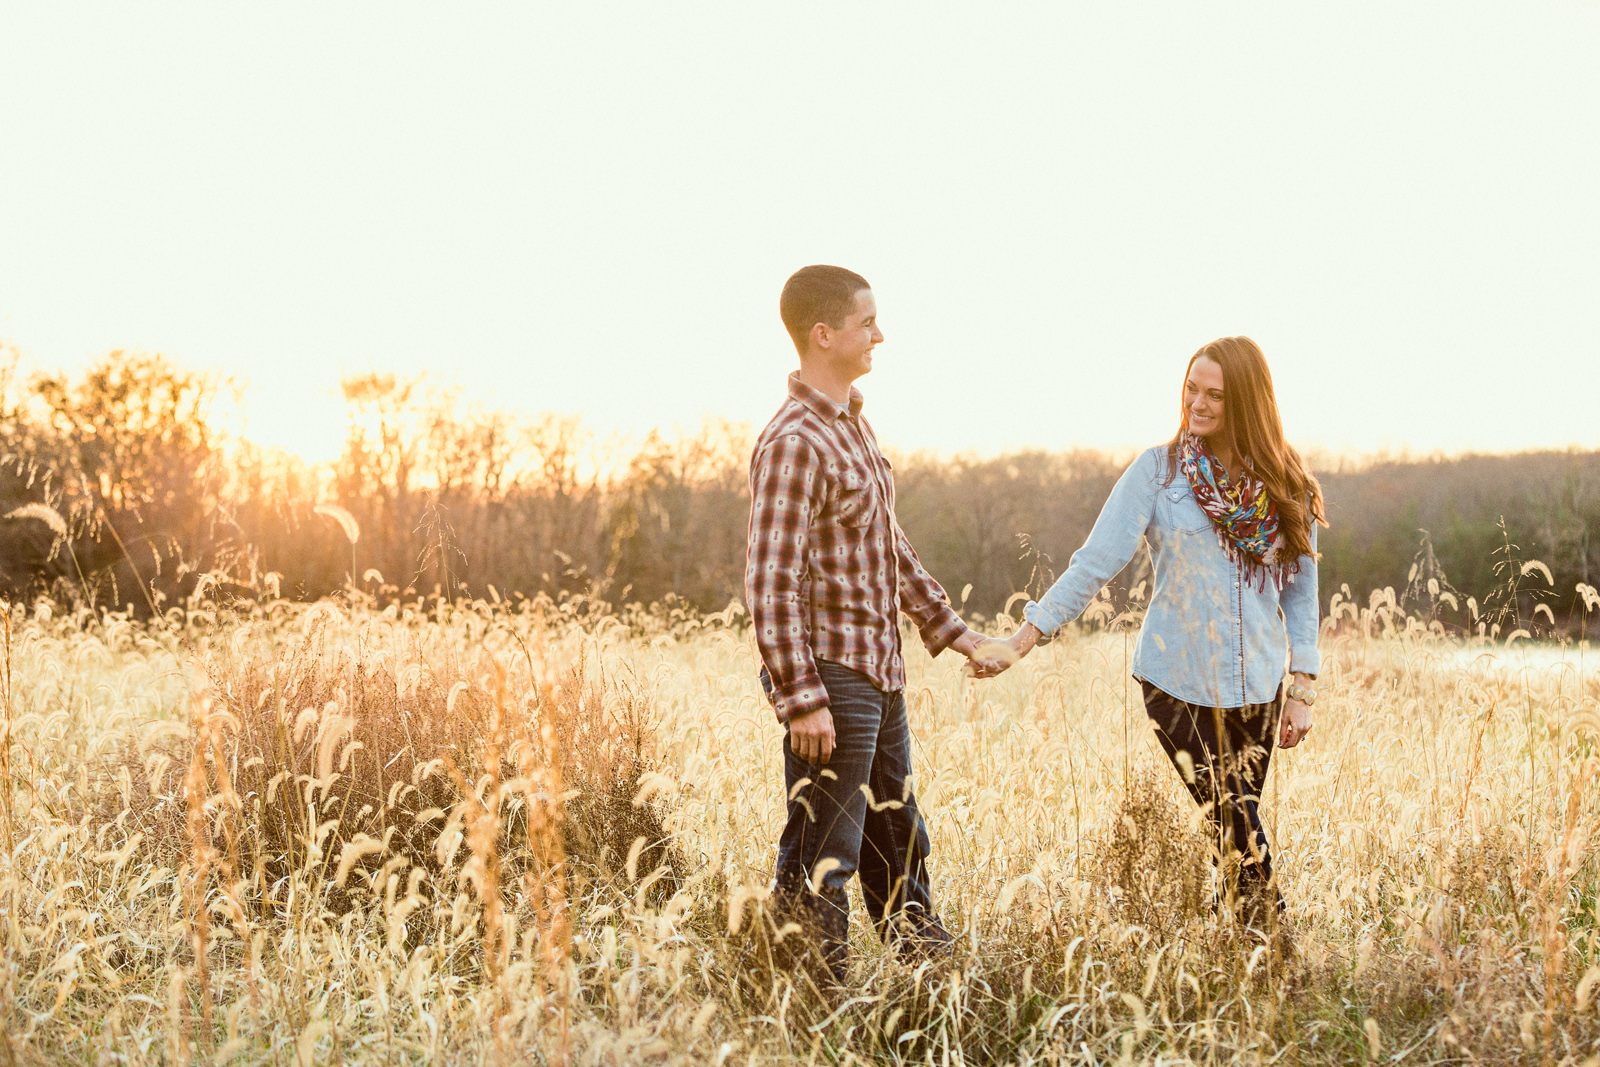 Oldani-Photography-St-Charles-August-A-Busch-Memorial-Area-Engagement-Session-engagement-photos_20141128_171822.jpg